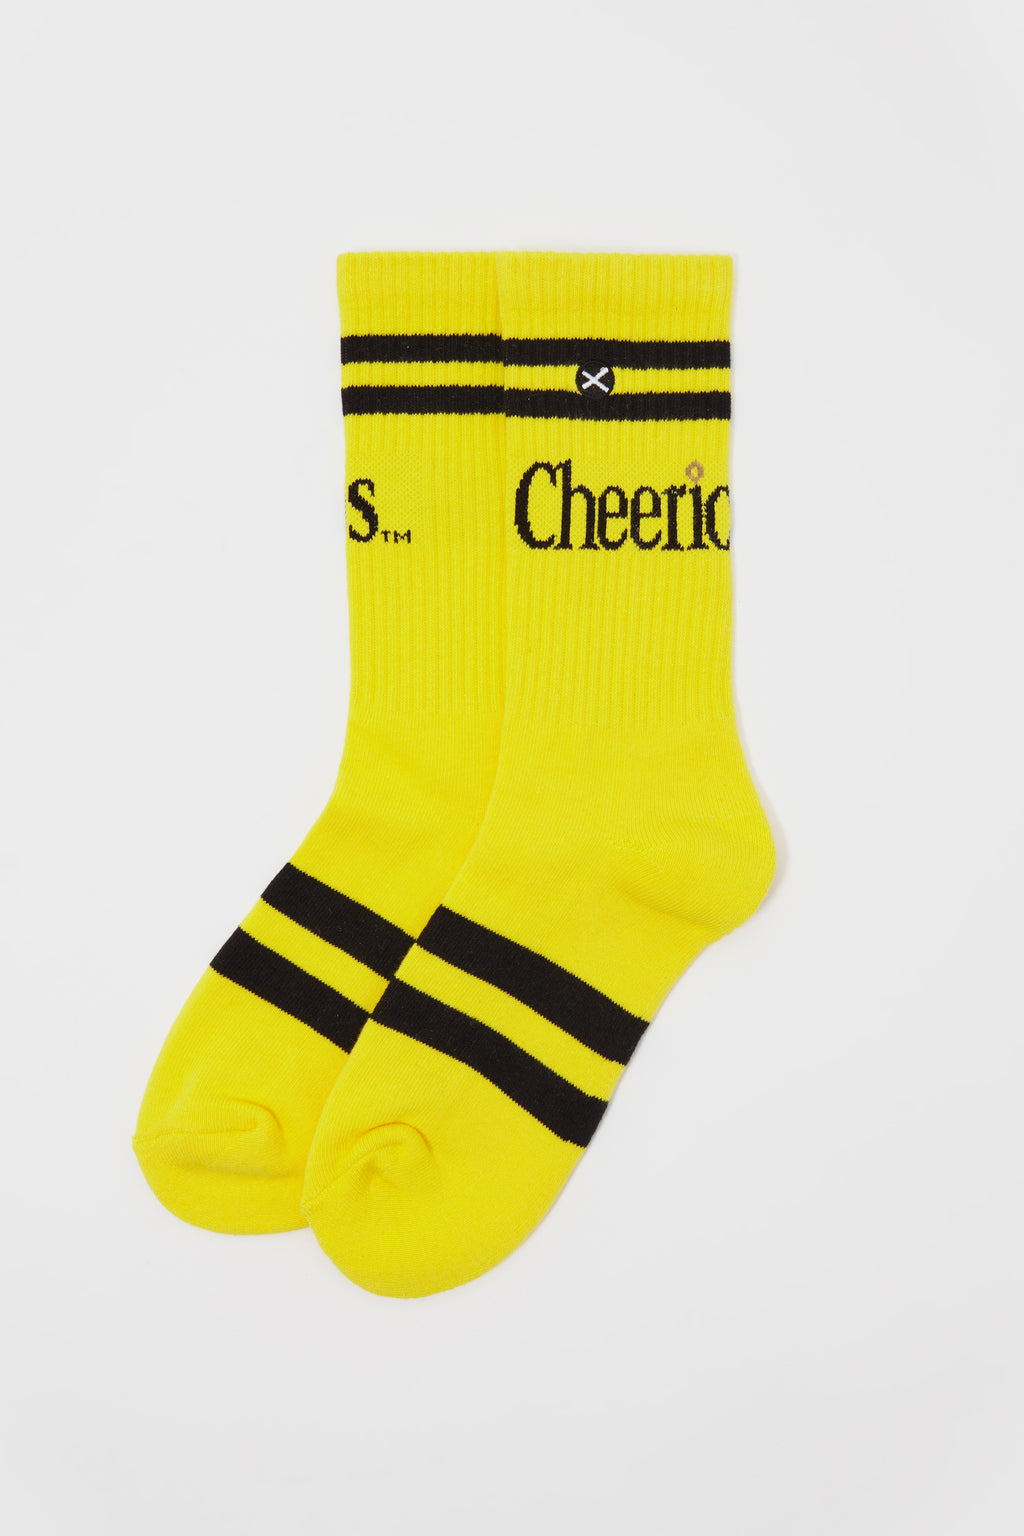 Odd Sox Mens Cheerios Crew Socks